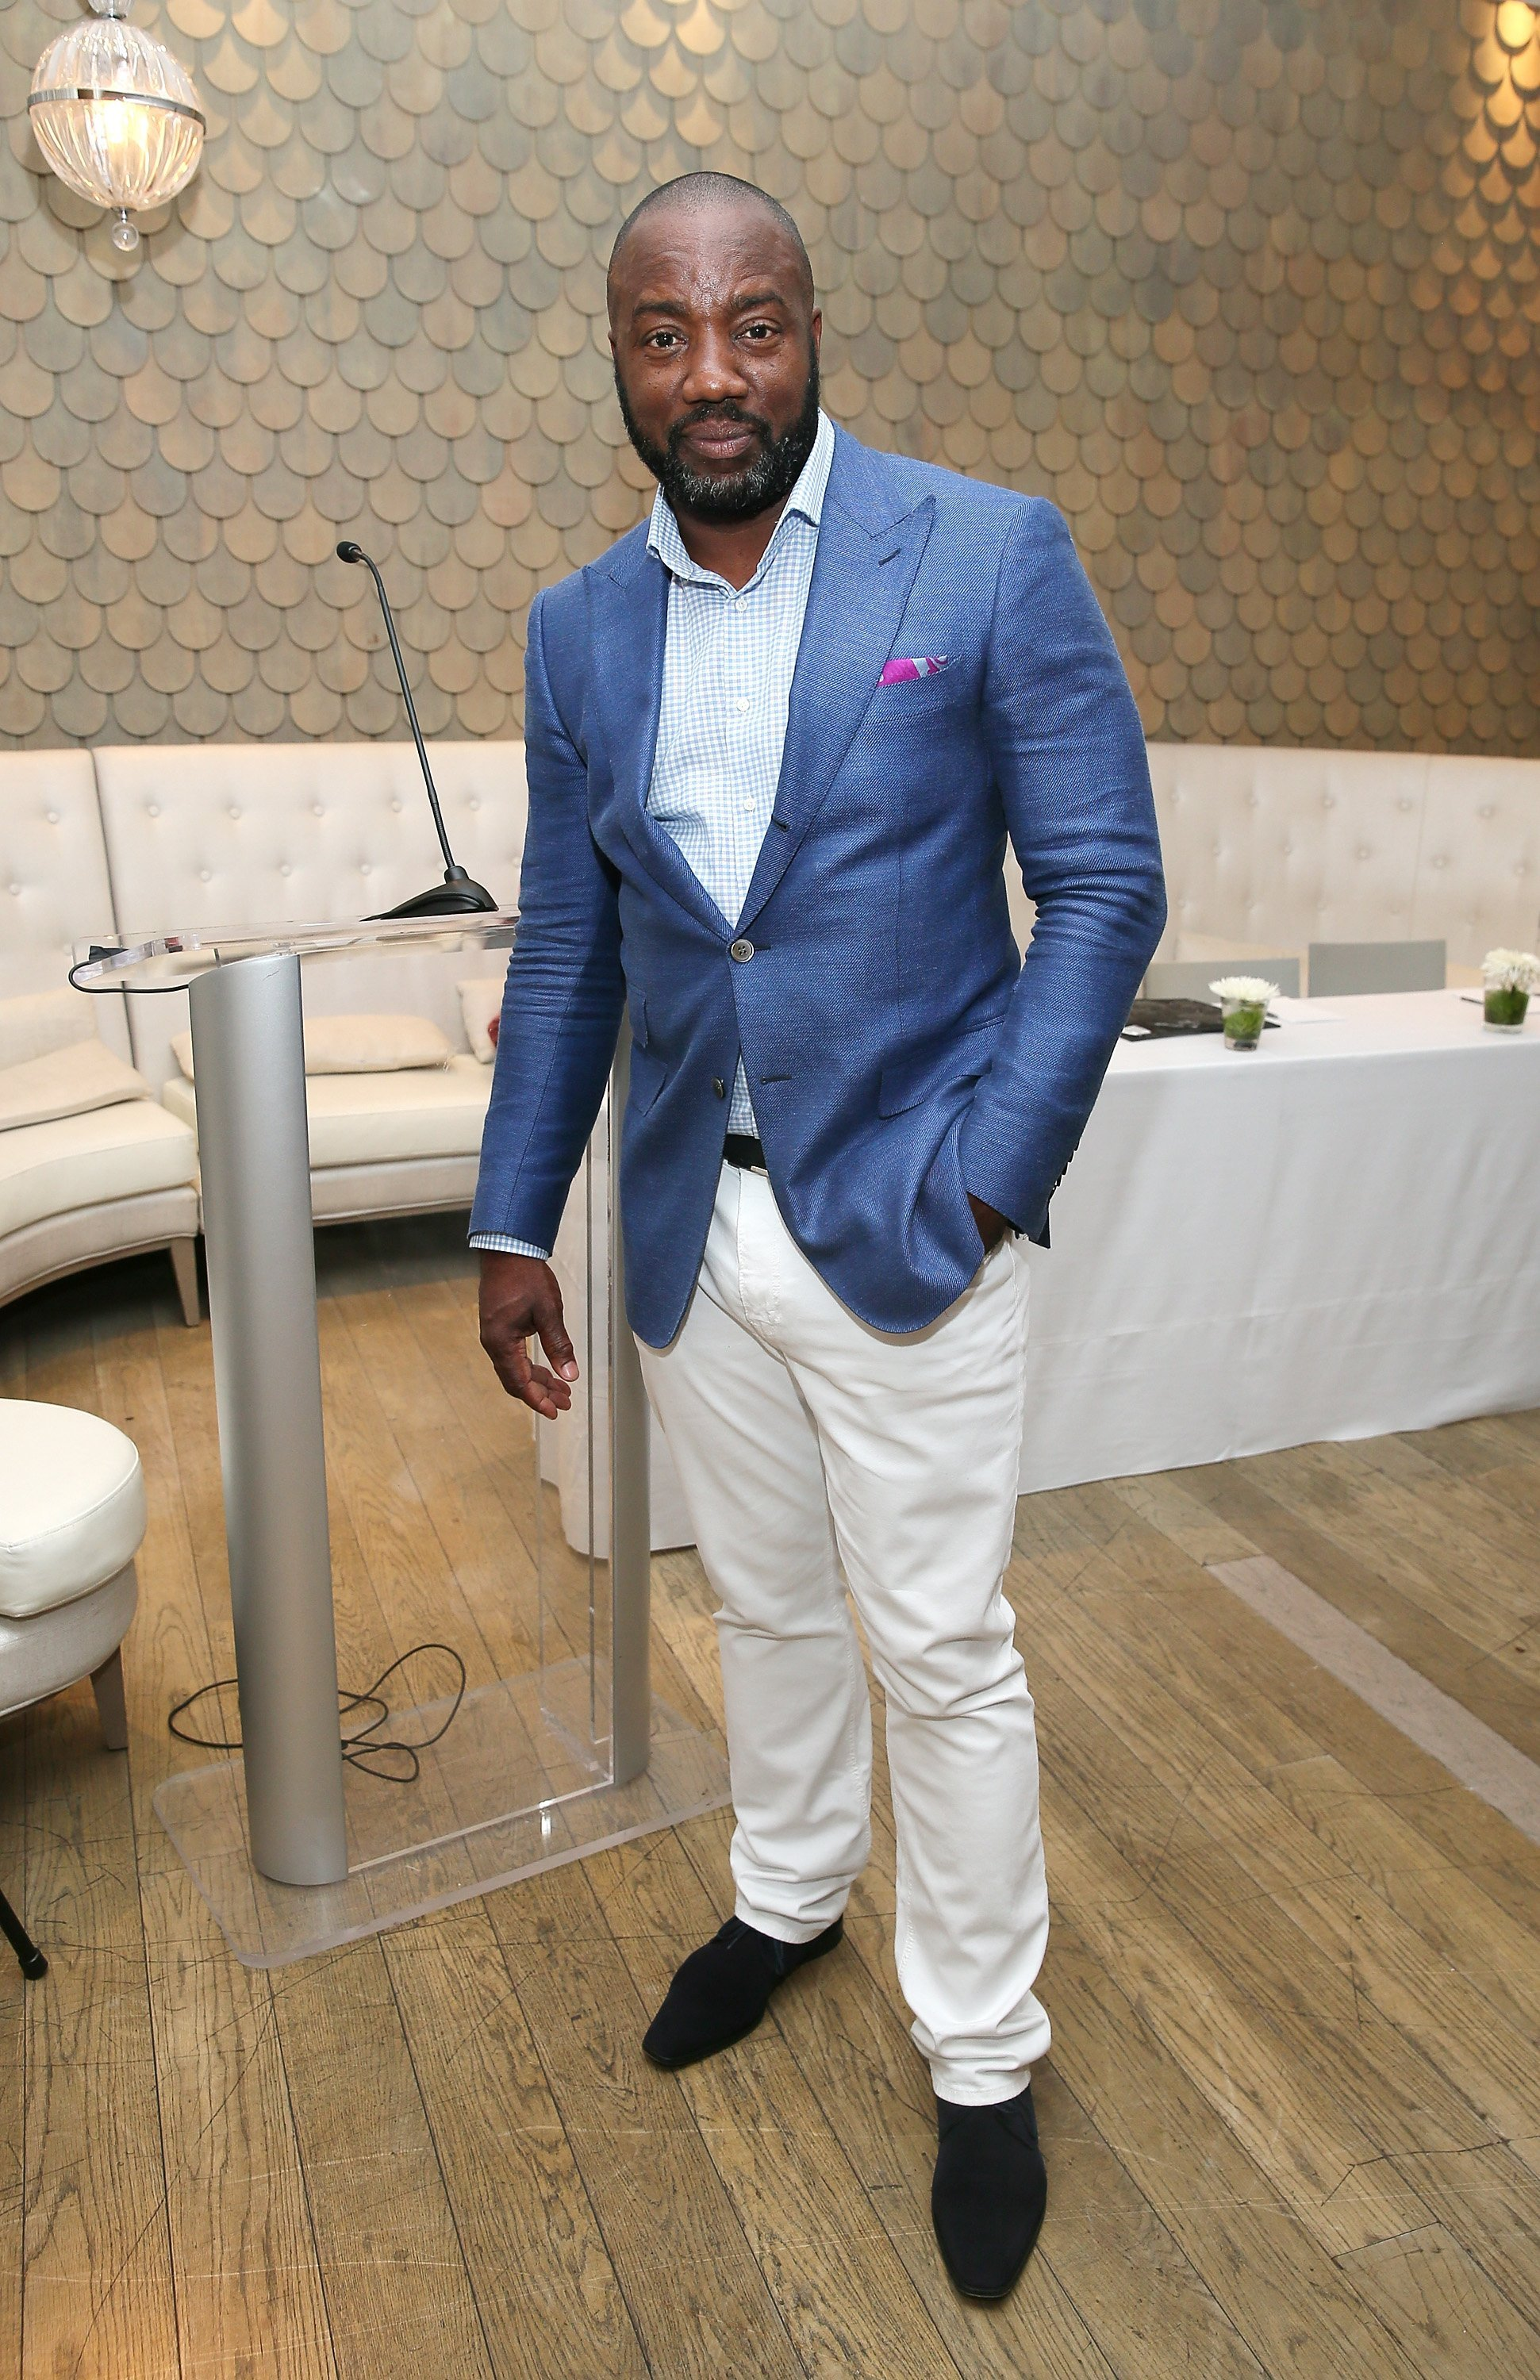 Malik Yoba at a press conference in New York in June 2015. | Photo: Getty Images